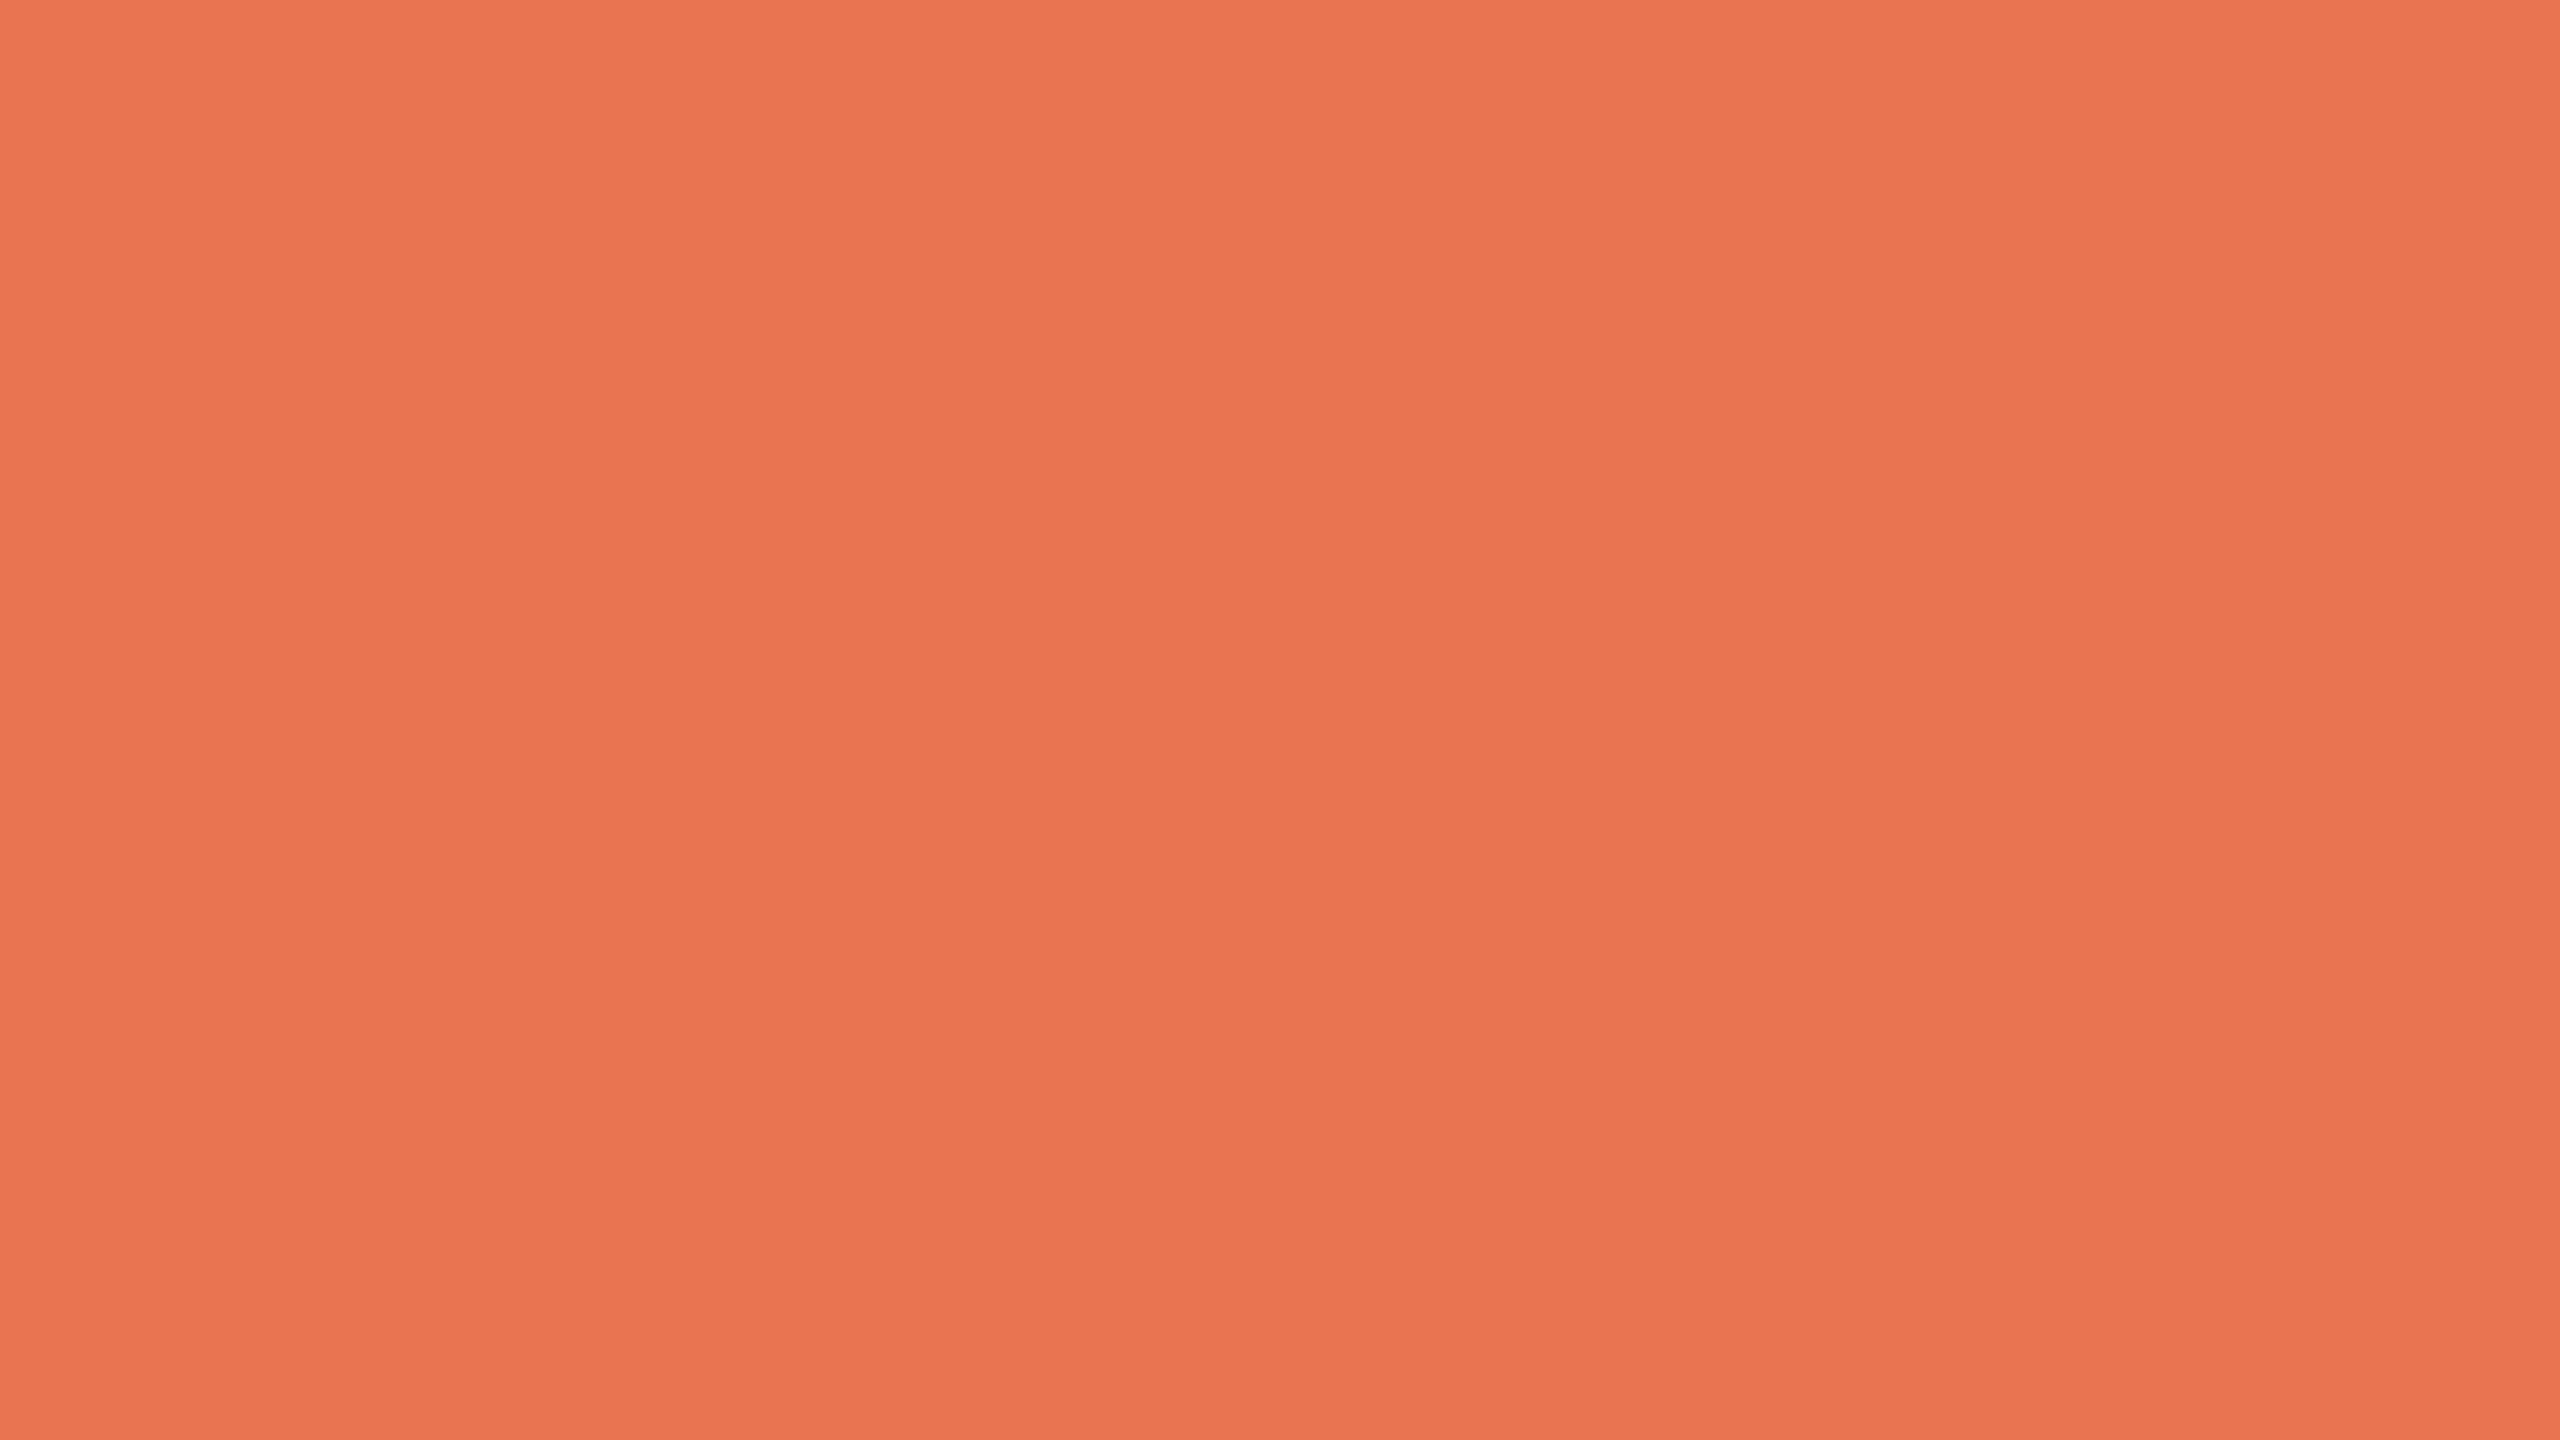 2560x1440 Burnt Sienna Solid Color Background